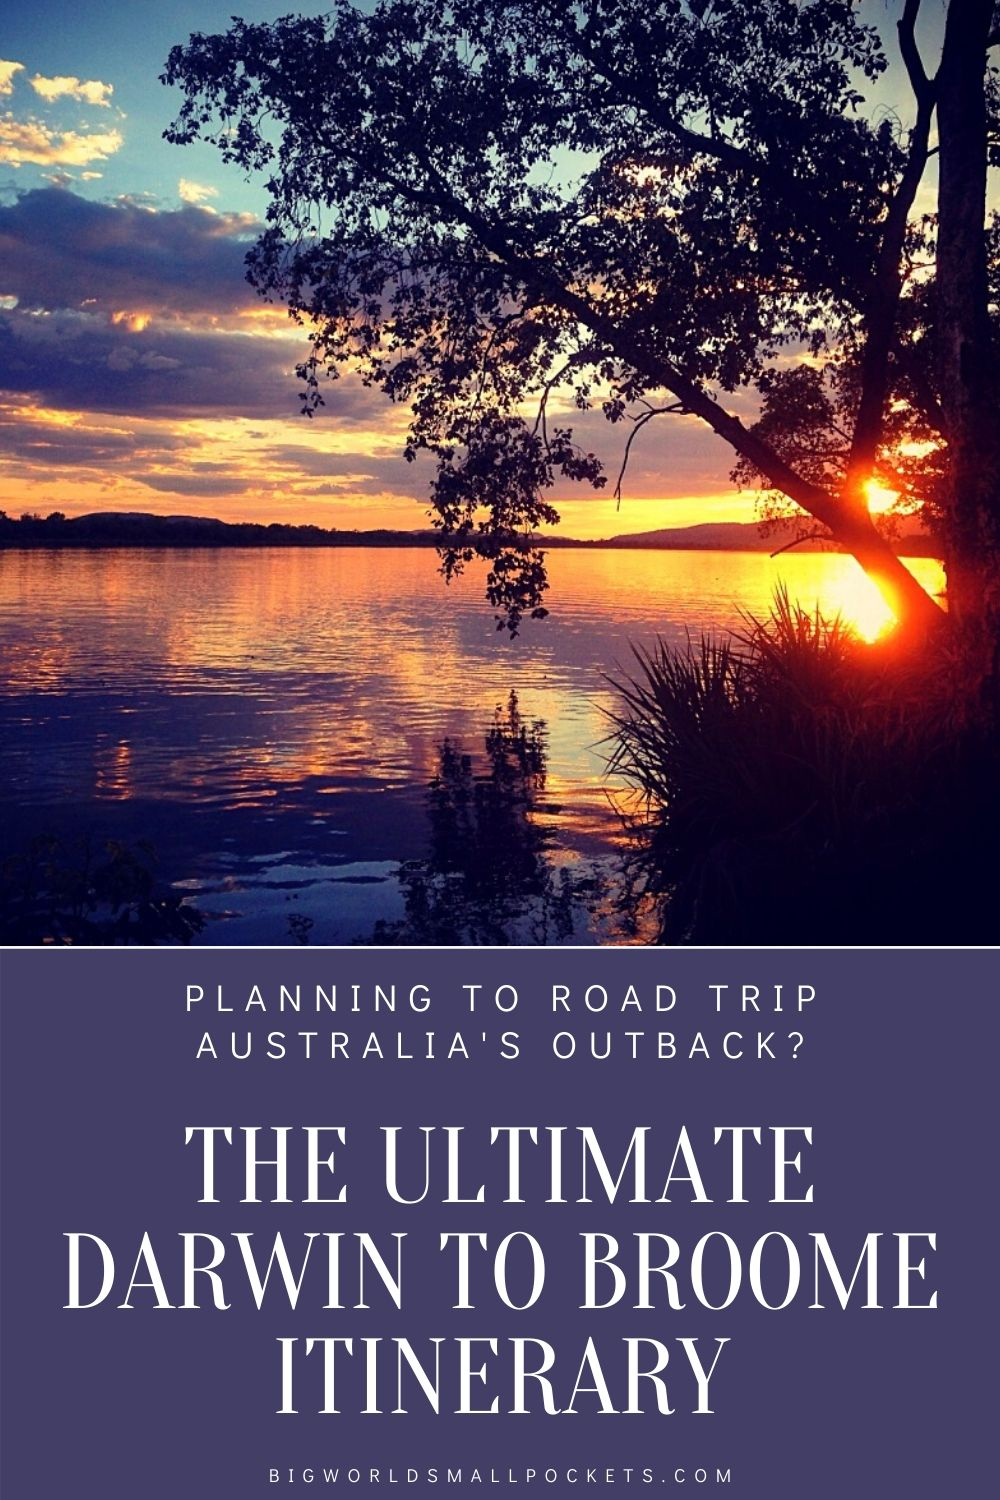 The Perfect Outback Road Trip Itinerary - Darwin to Broom in 14 Days!